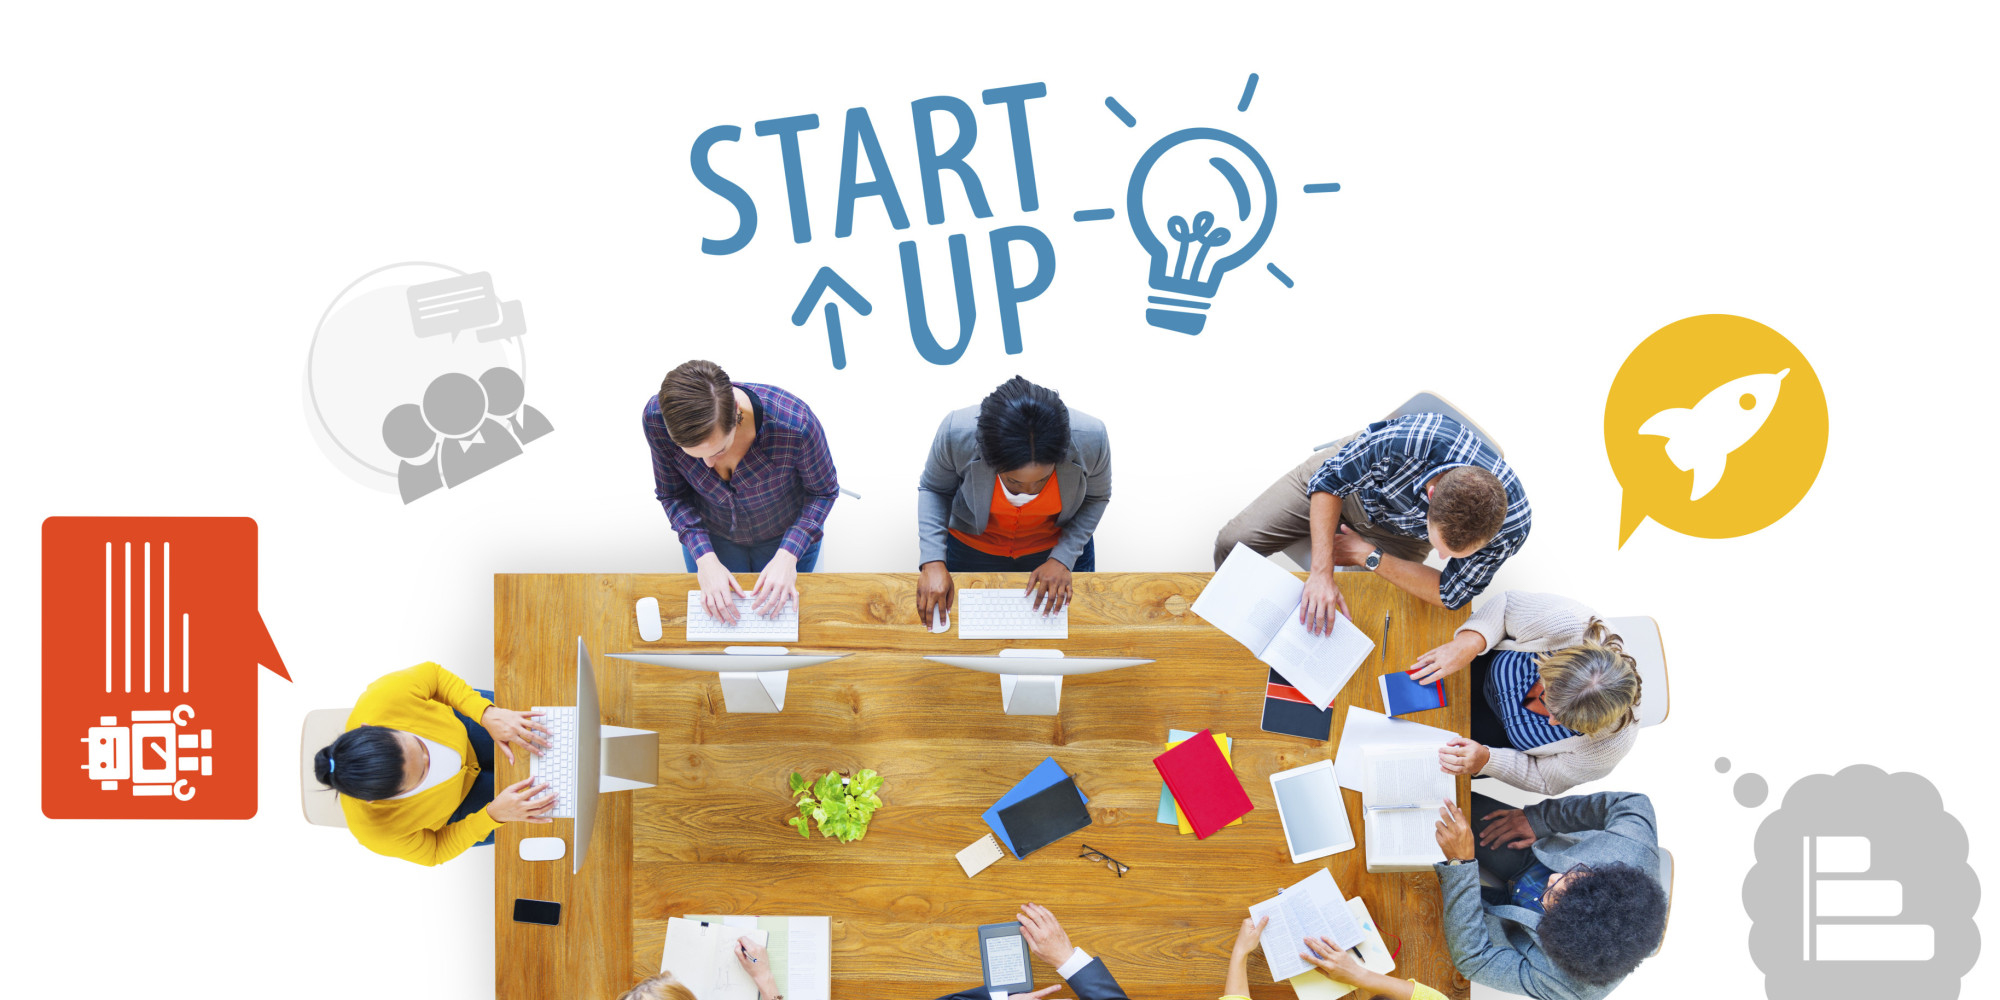 Micro Startup, Business Startup, micro business